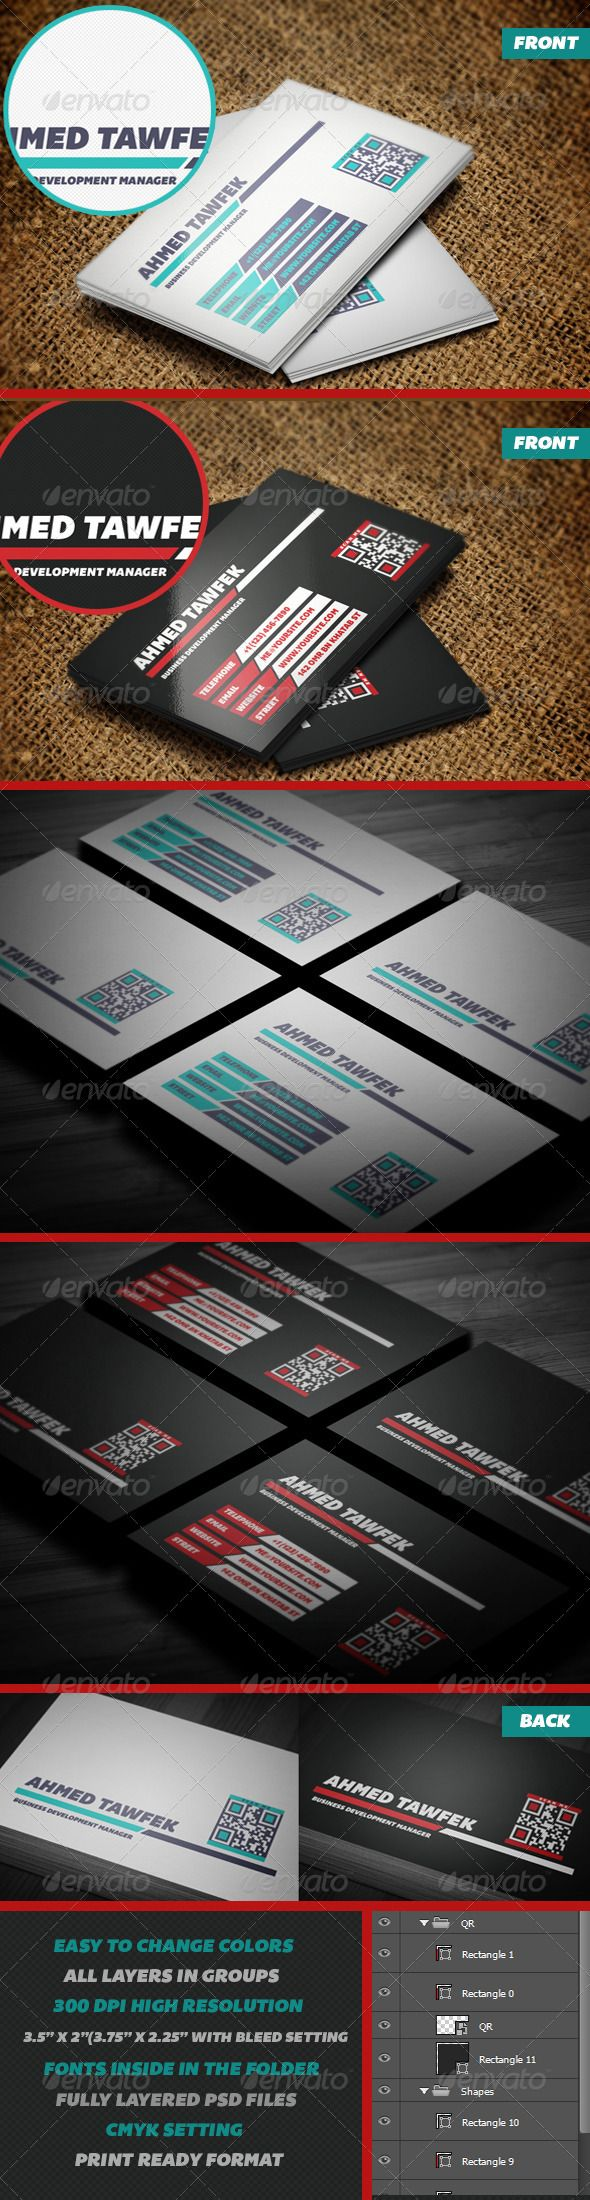 63 best BUSINESS CARDS images on Pinterest | Business cards, Carte ...